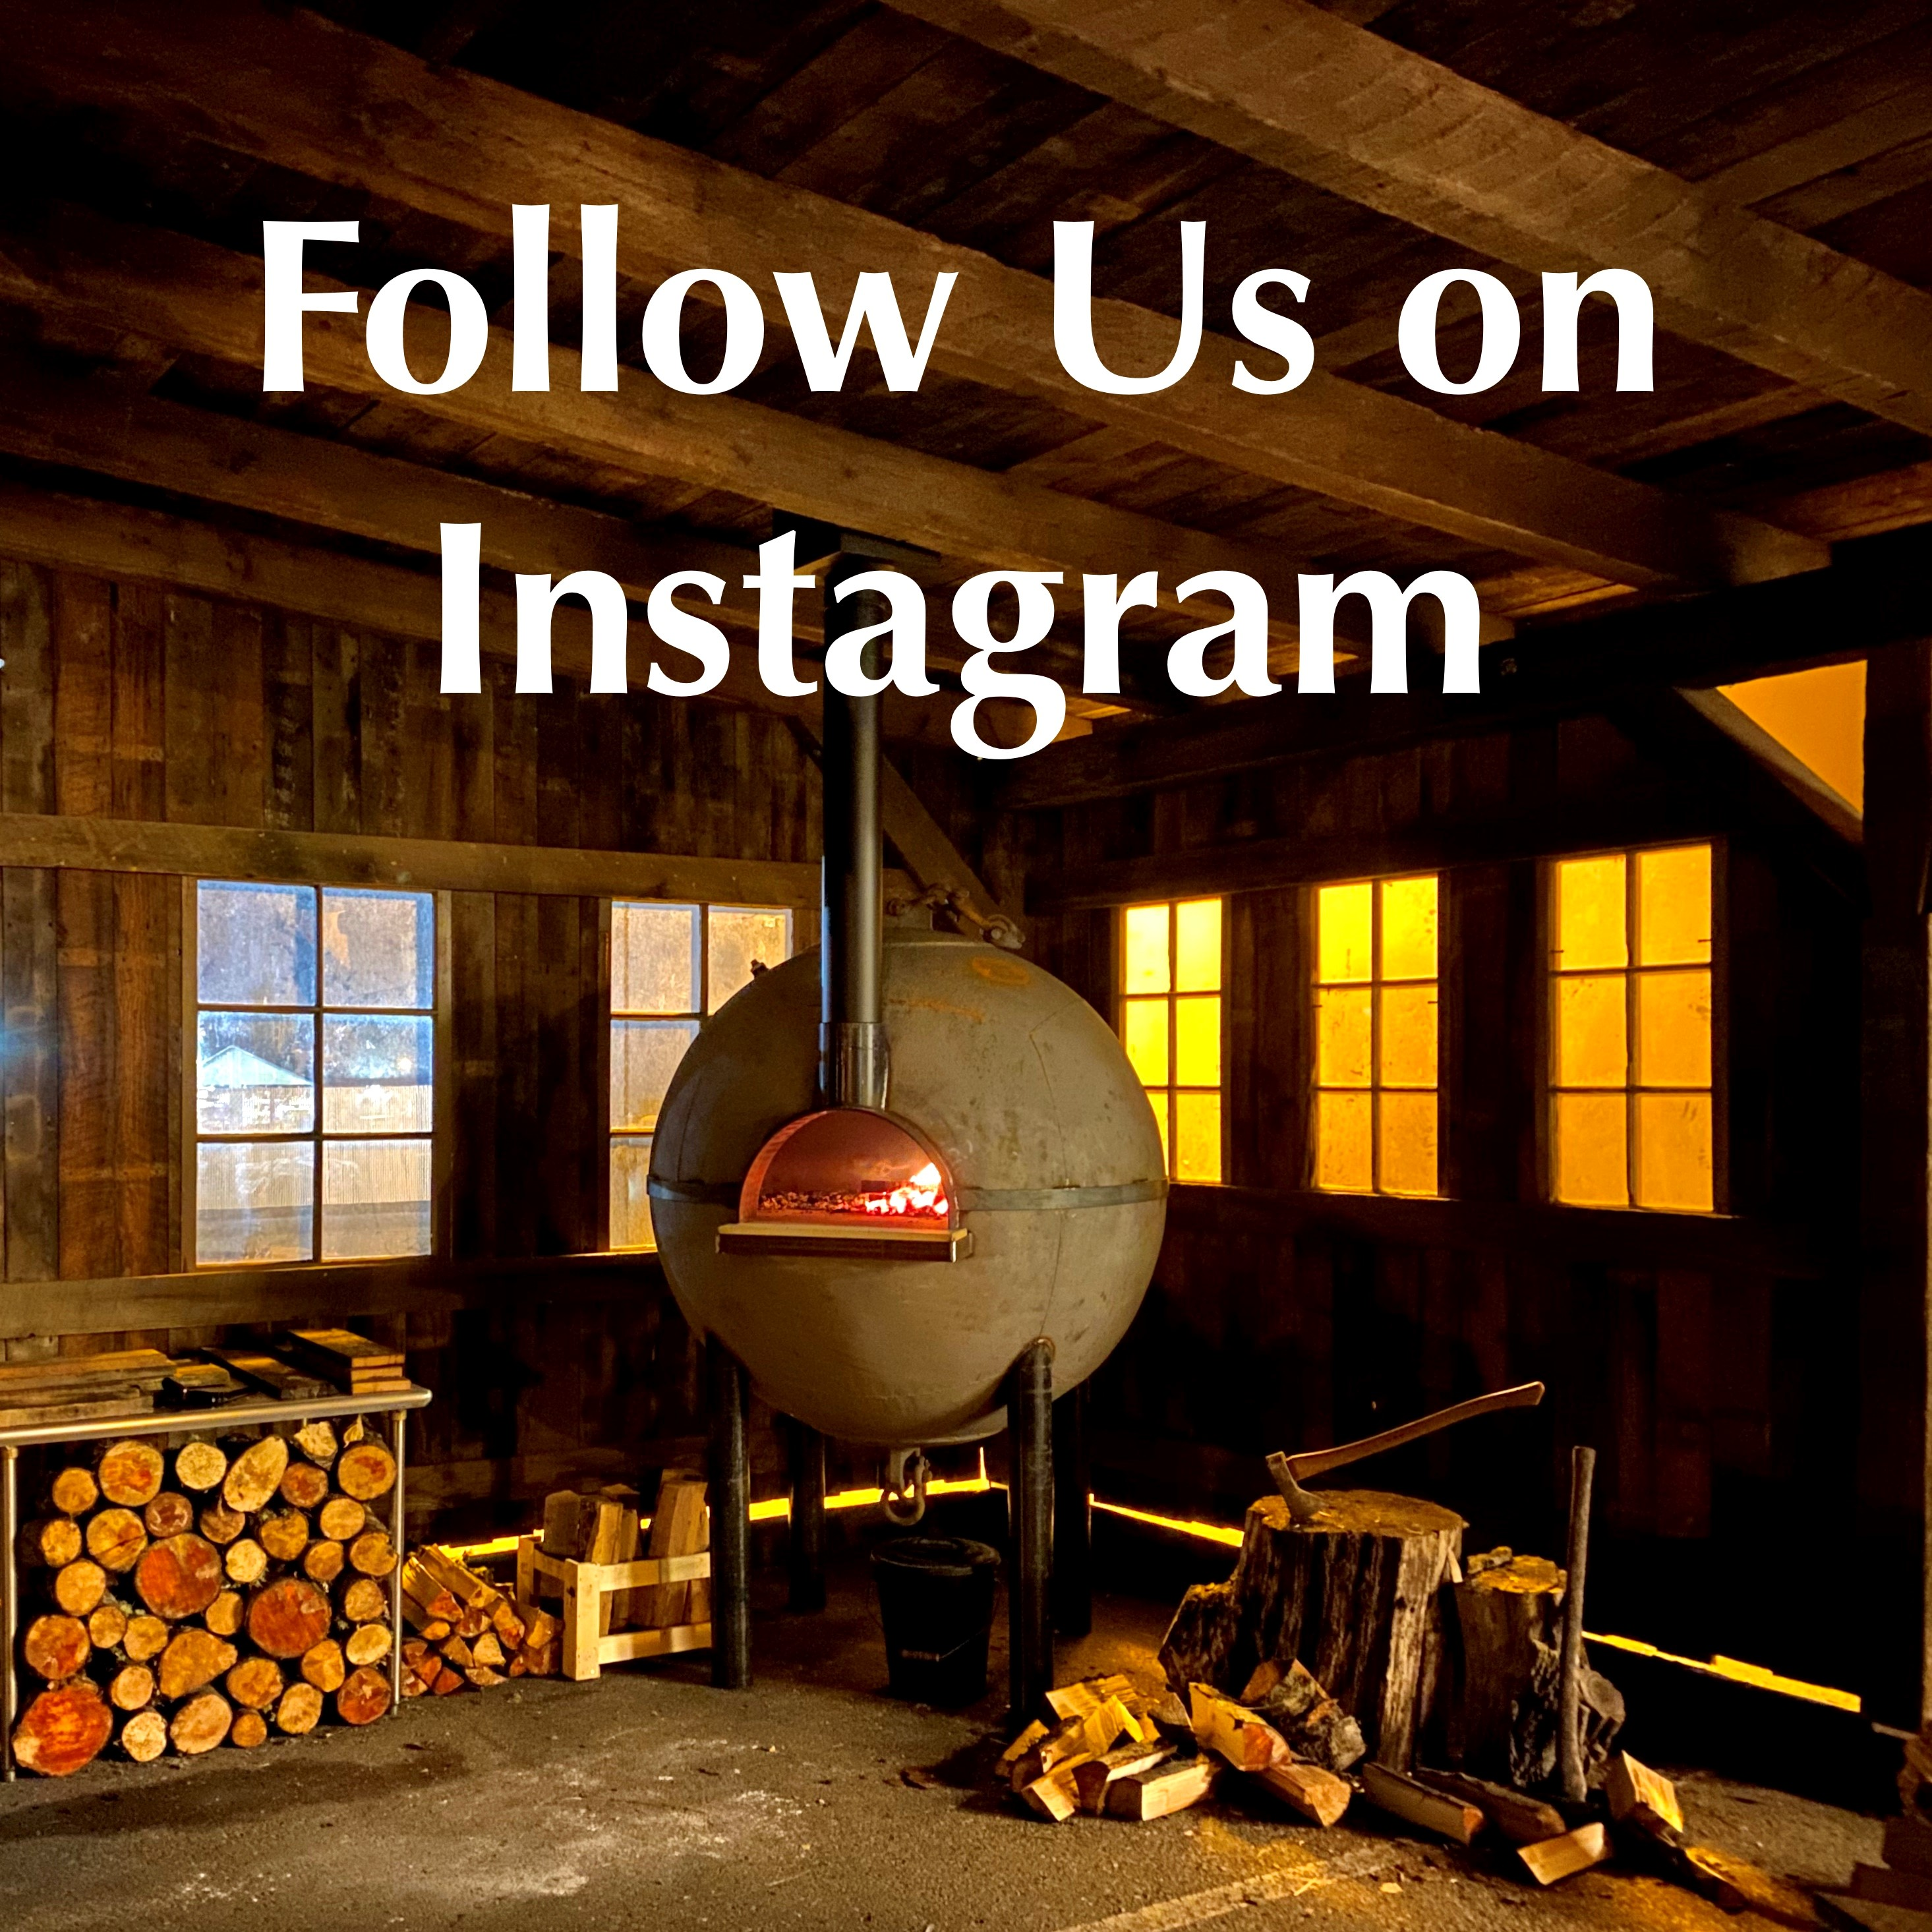 """Follow Us on Instagram"" overlaying rustic building with spherical wood-fired oven."